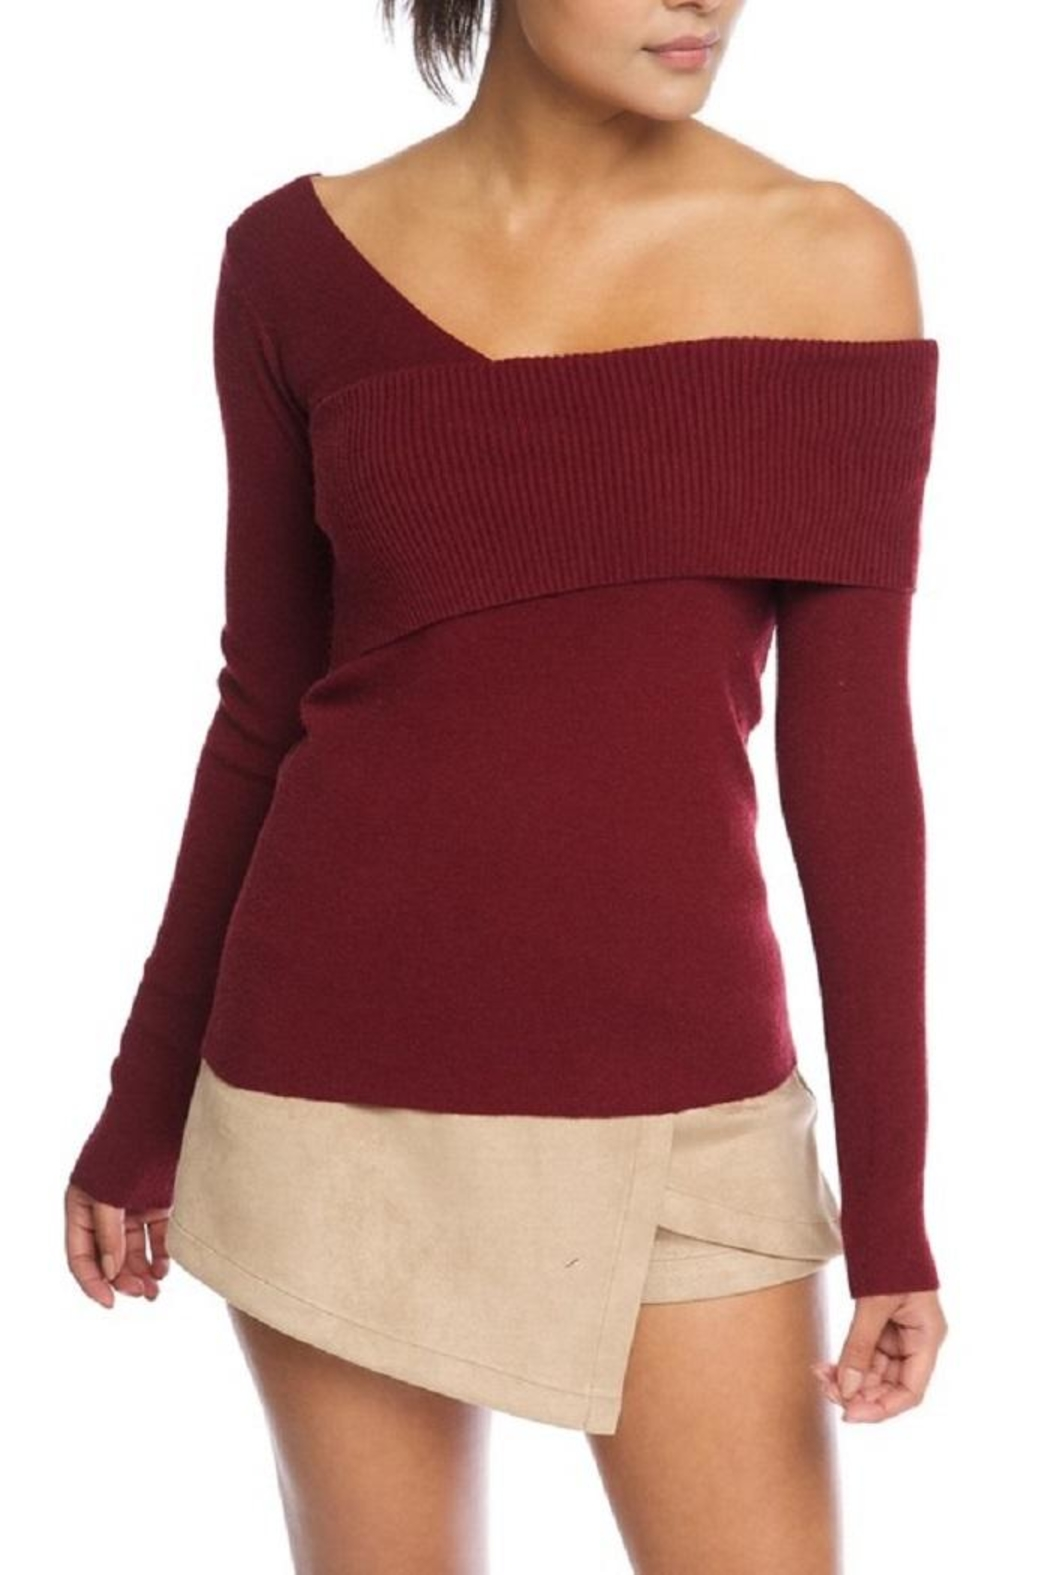 luxxel One Shoulder Sweater - Main Image